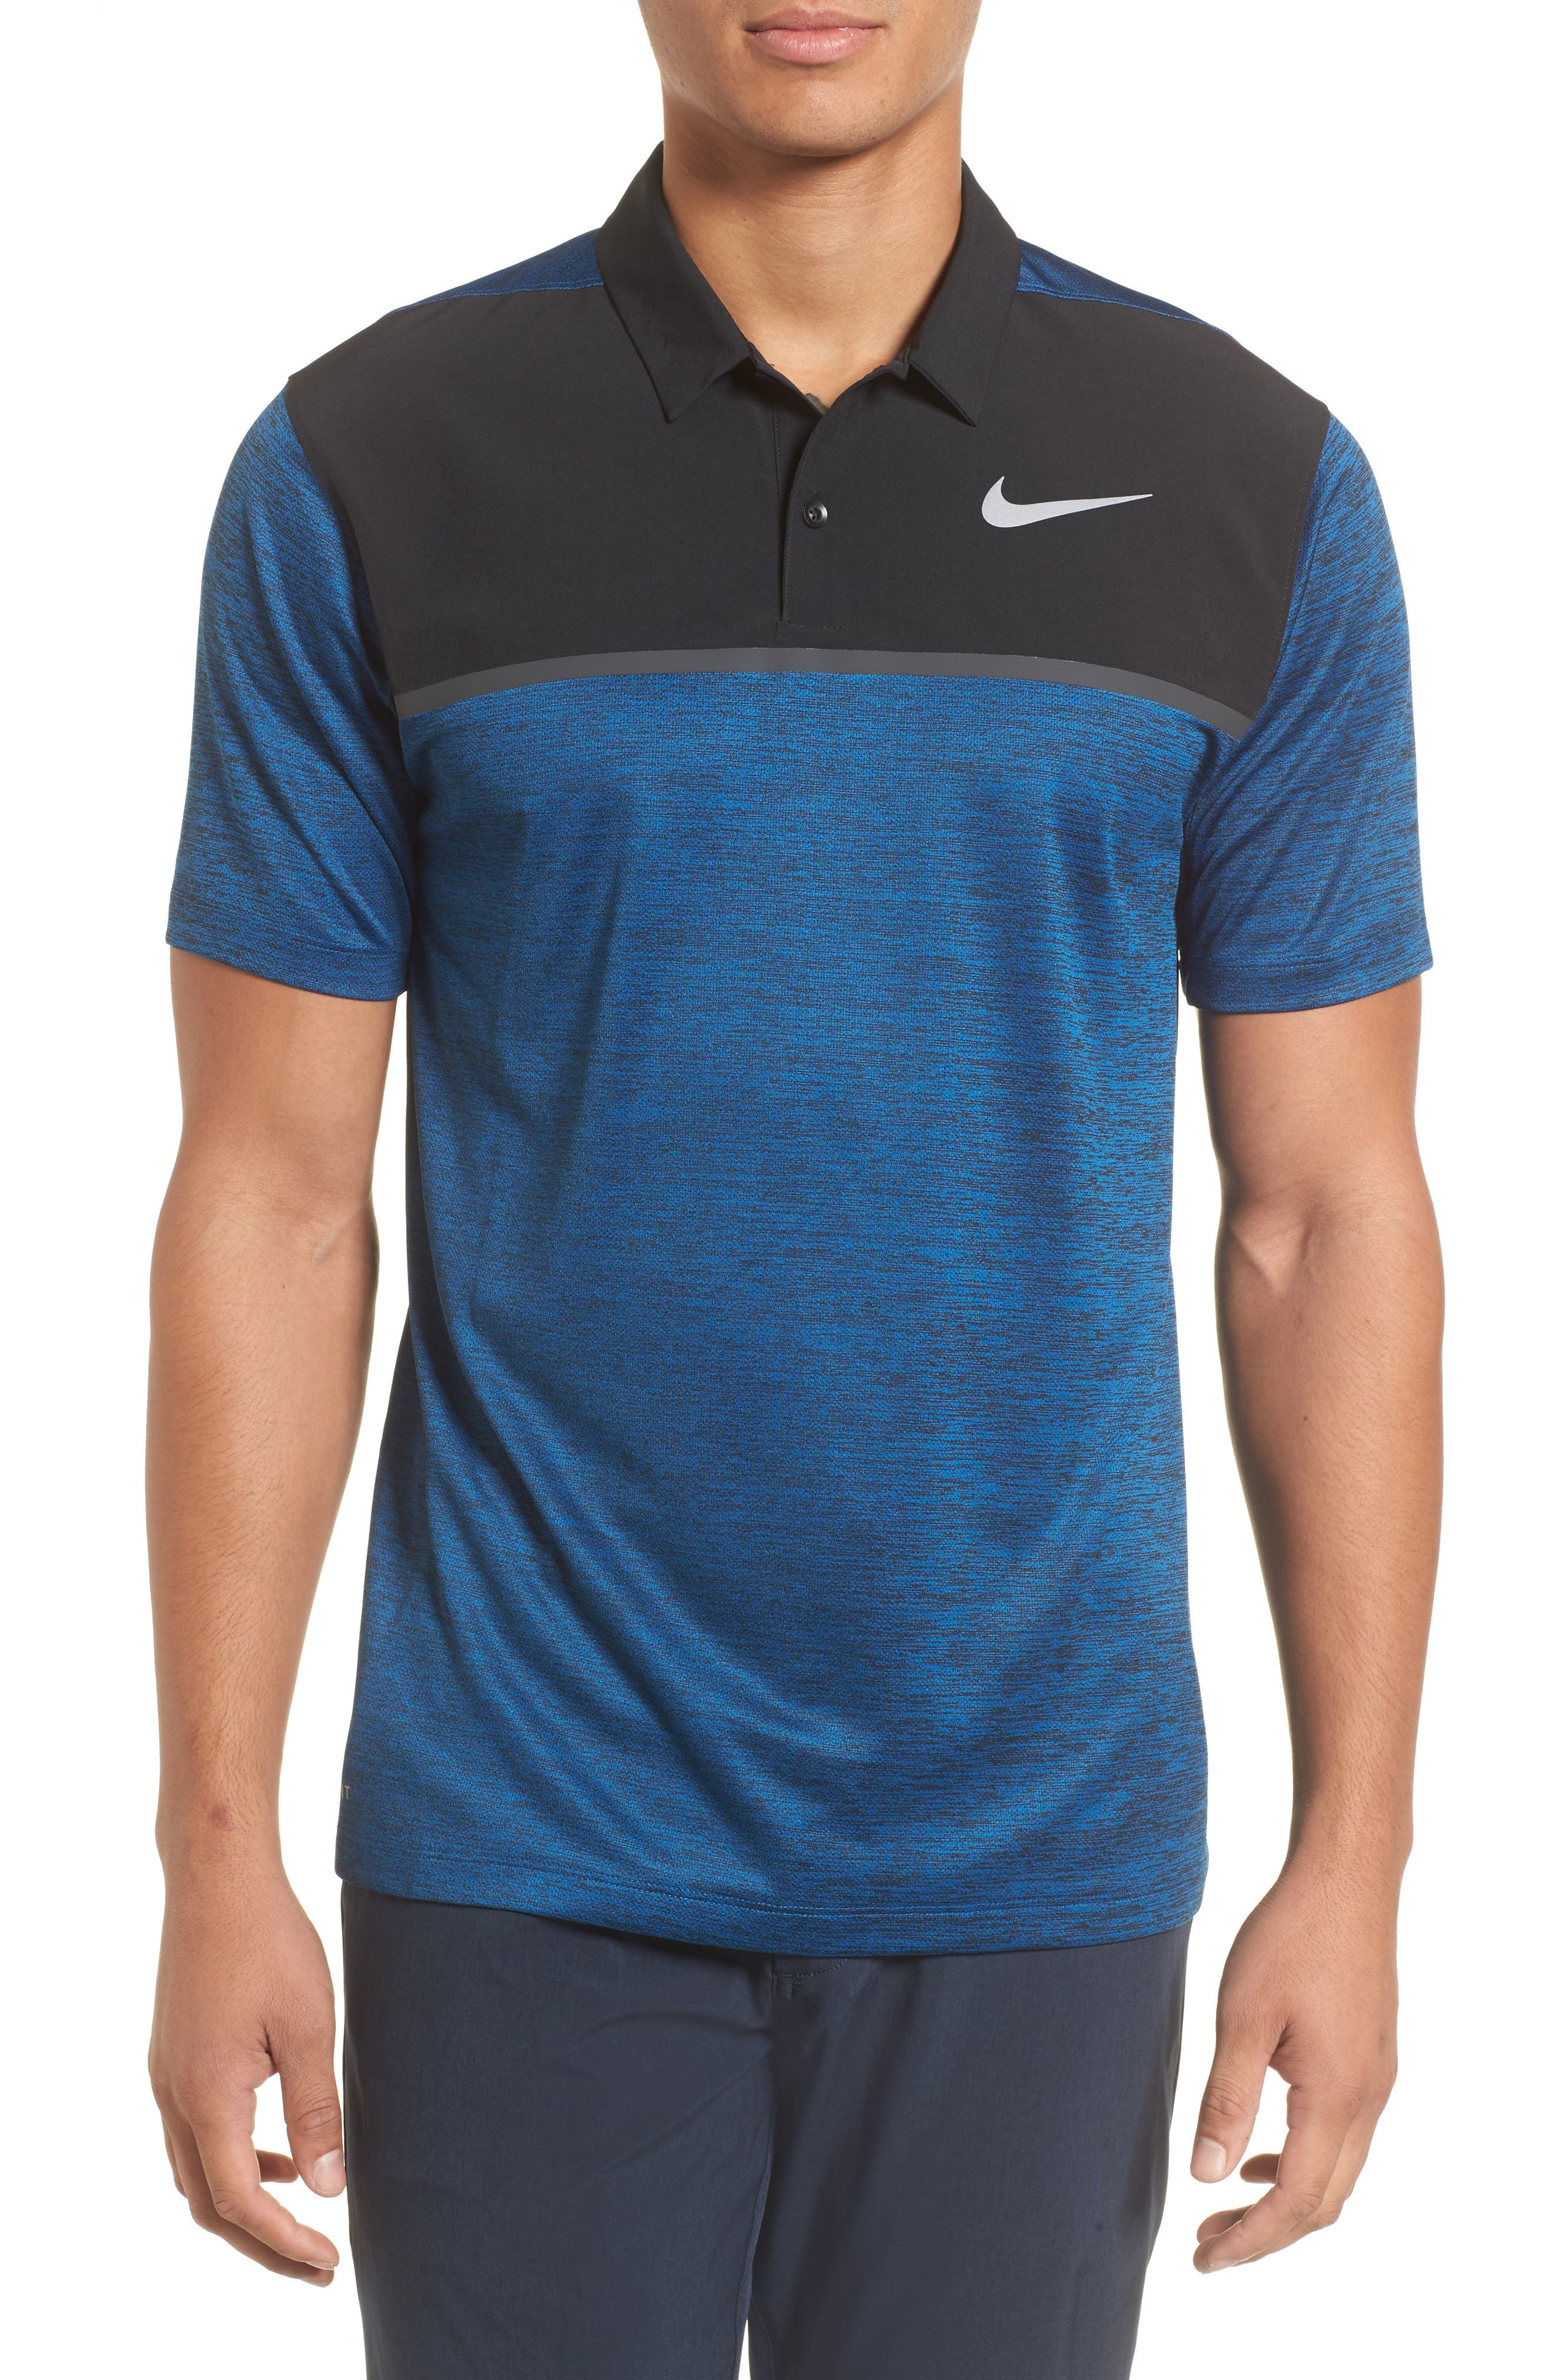 Nike Dry Colorblock Golf Polo